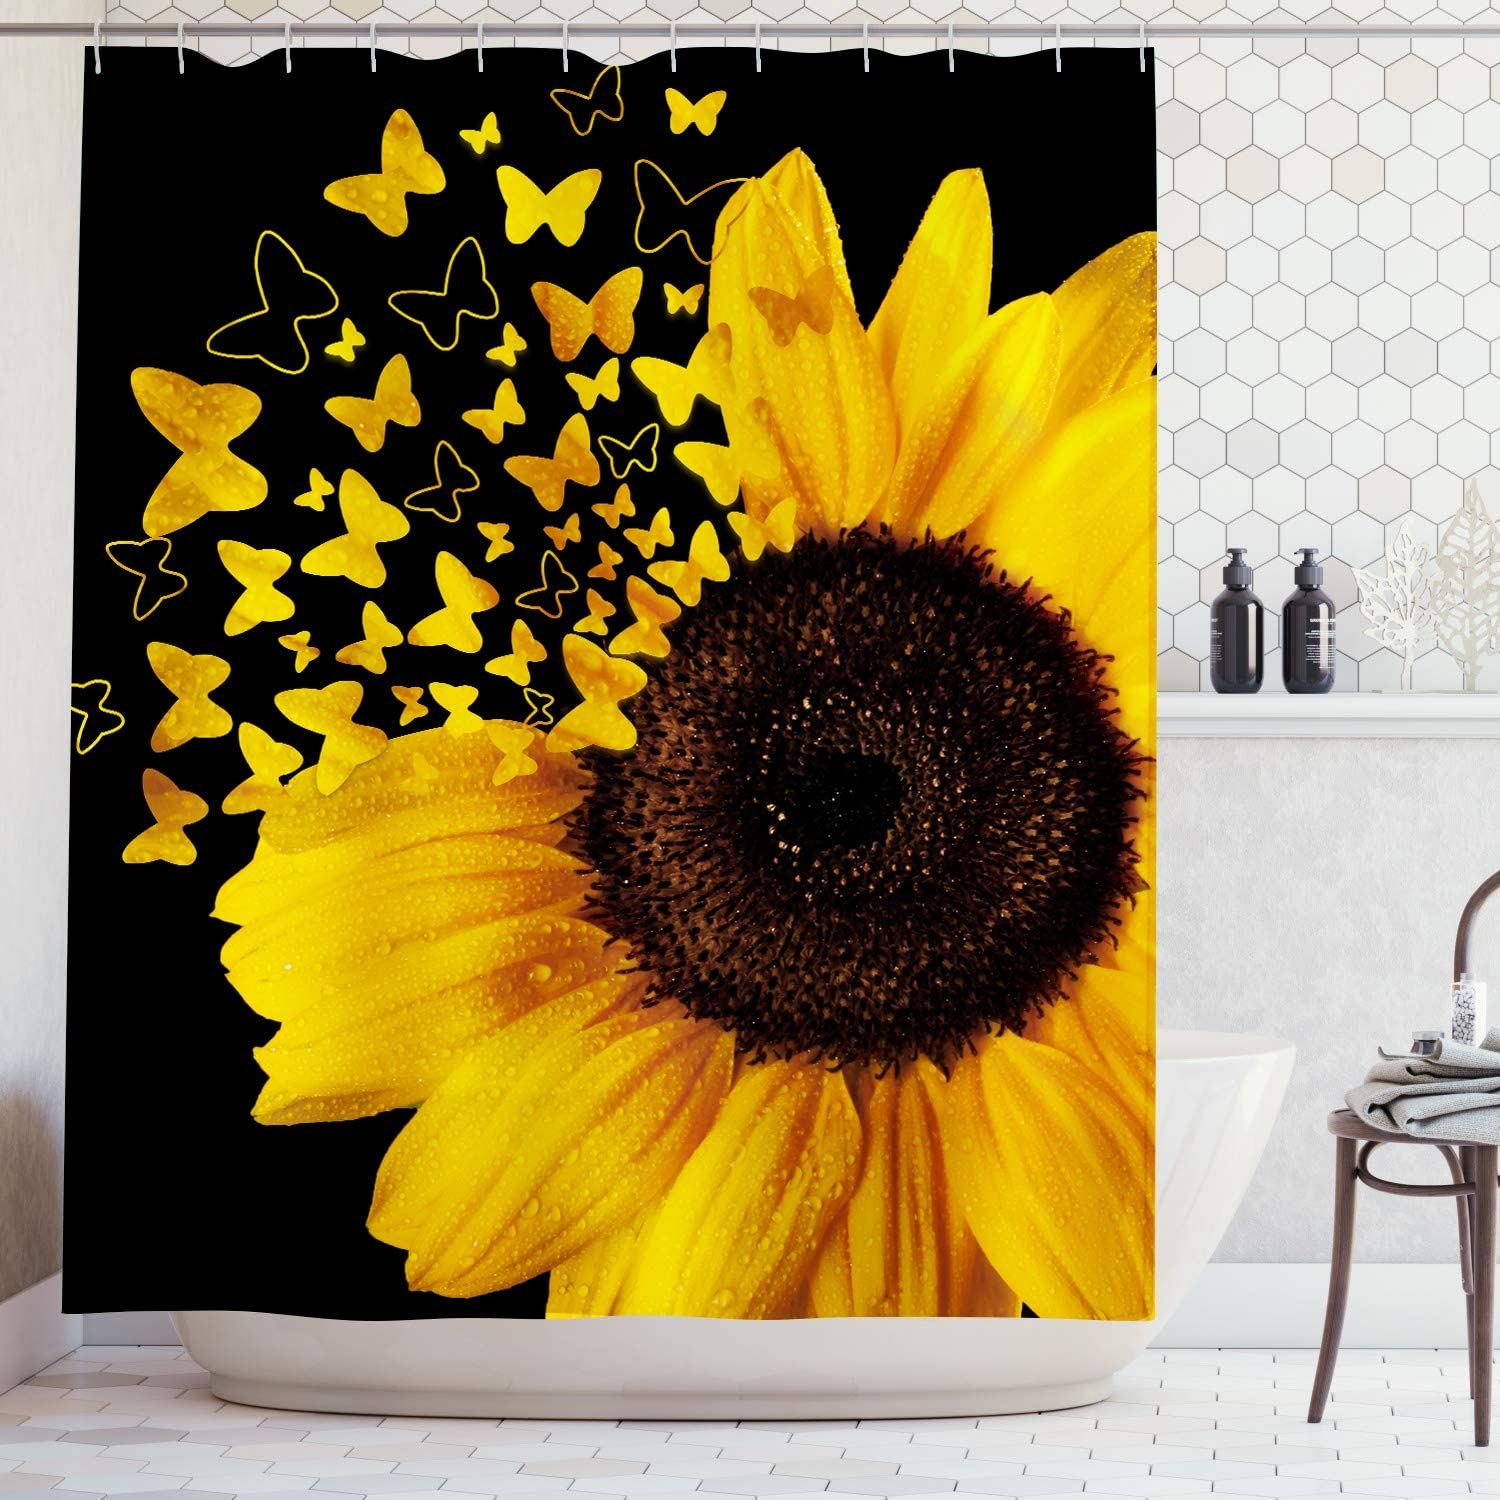 AMBZEK Sunflower Shower Curtain Butterfly Blooming Wild Flower Floral Spring Plants Rustic Nature Artwork Cloth Fabric Bathroom Decor Set with 12 Pack Hooks 60x71 inch, Black Yellow